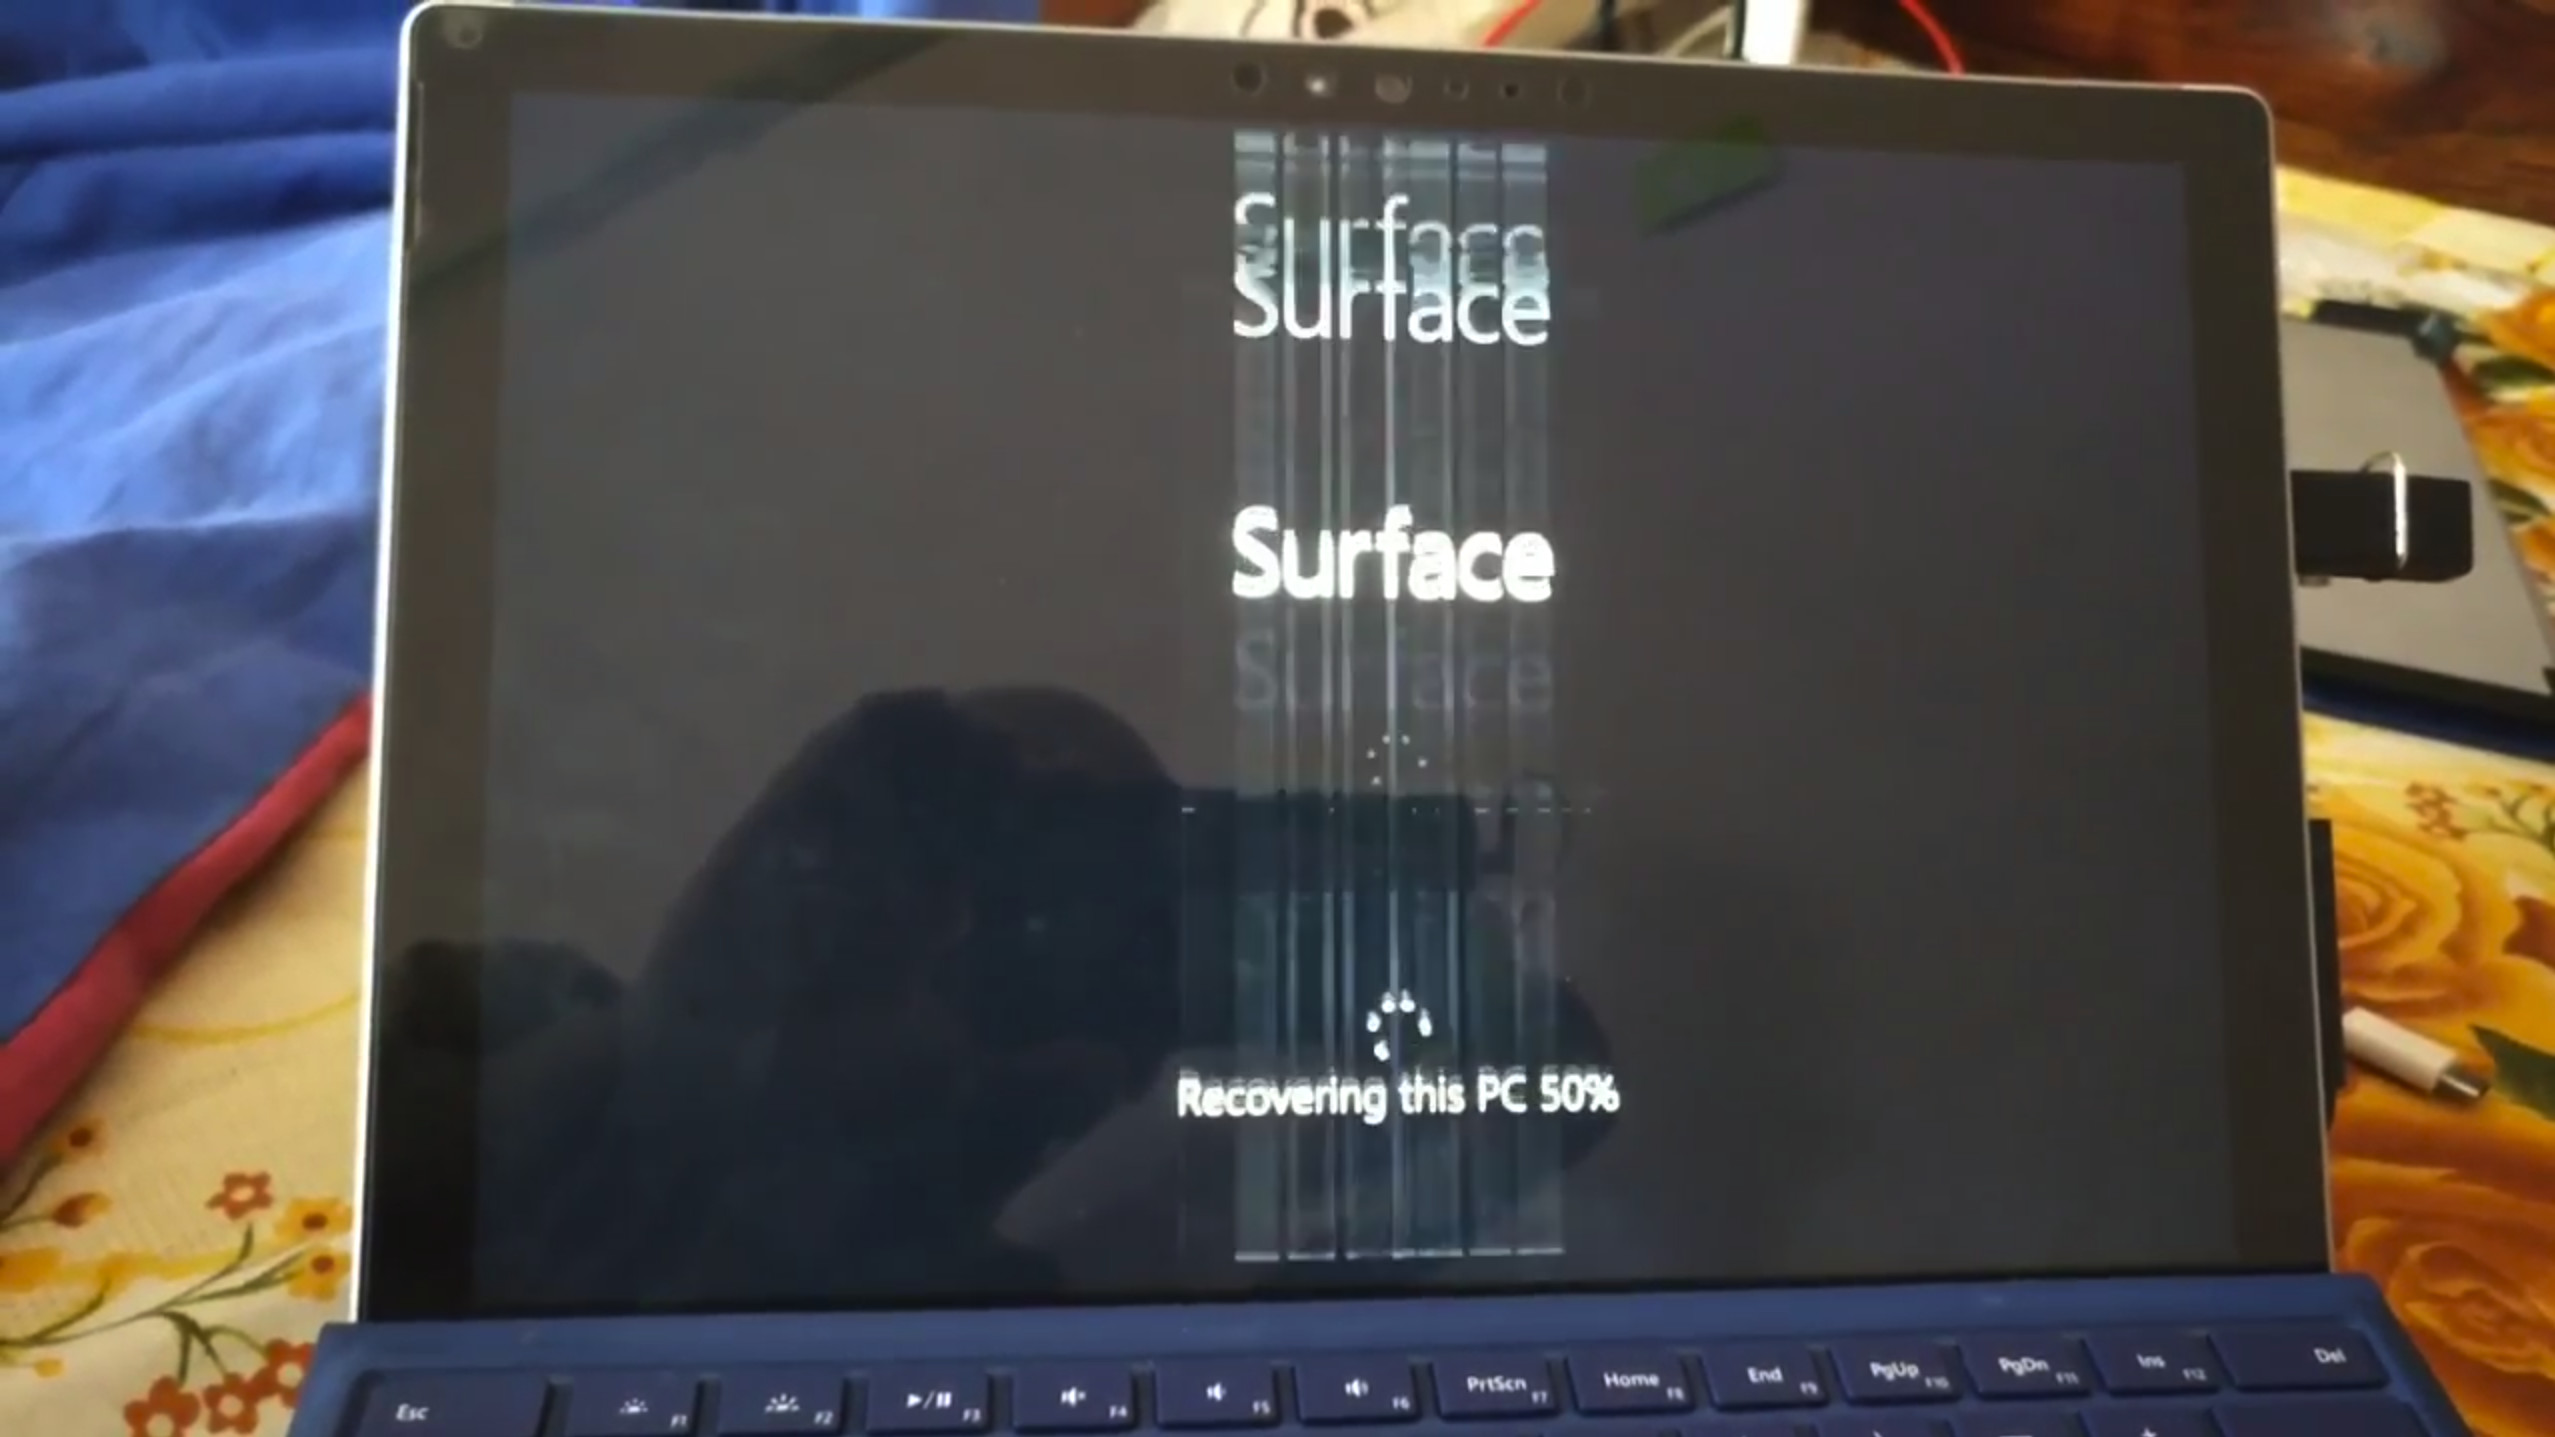 Owners Use Freezers To Fix Surface Pro 4 Screen Issues